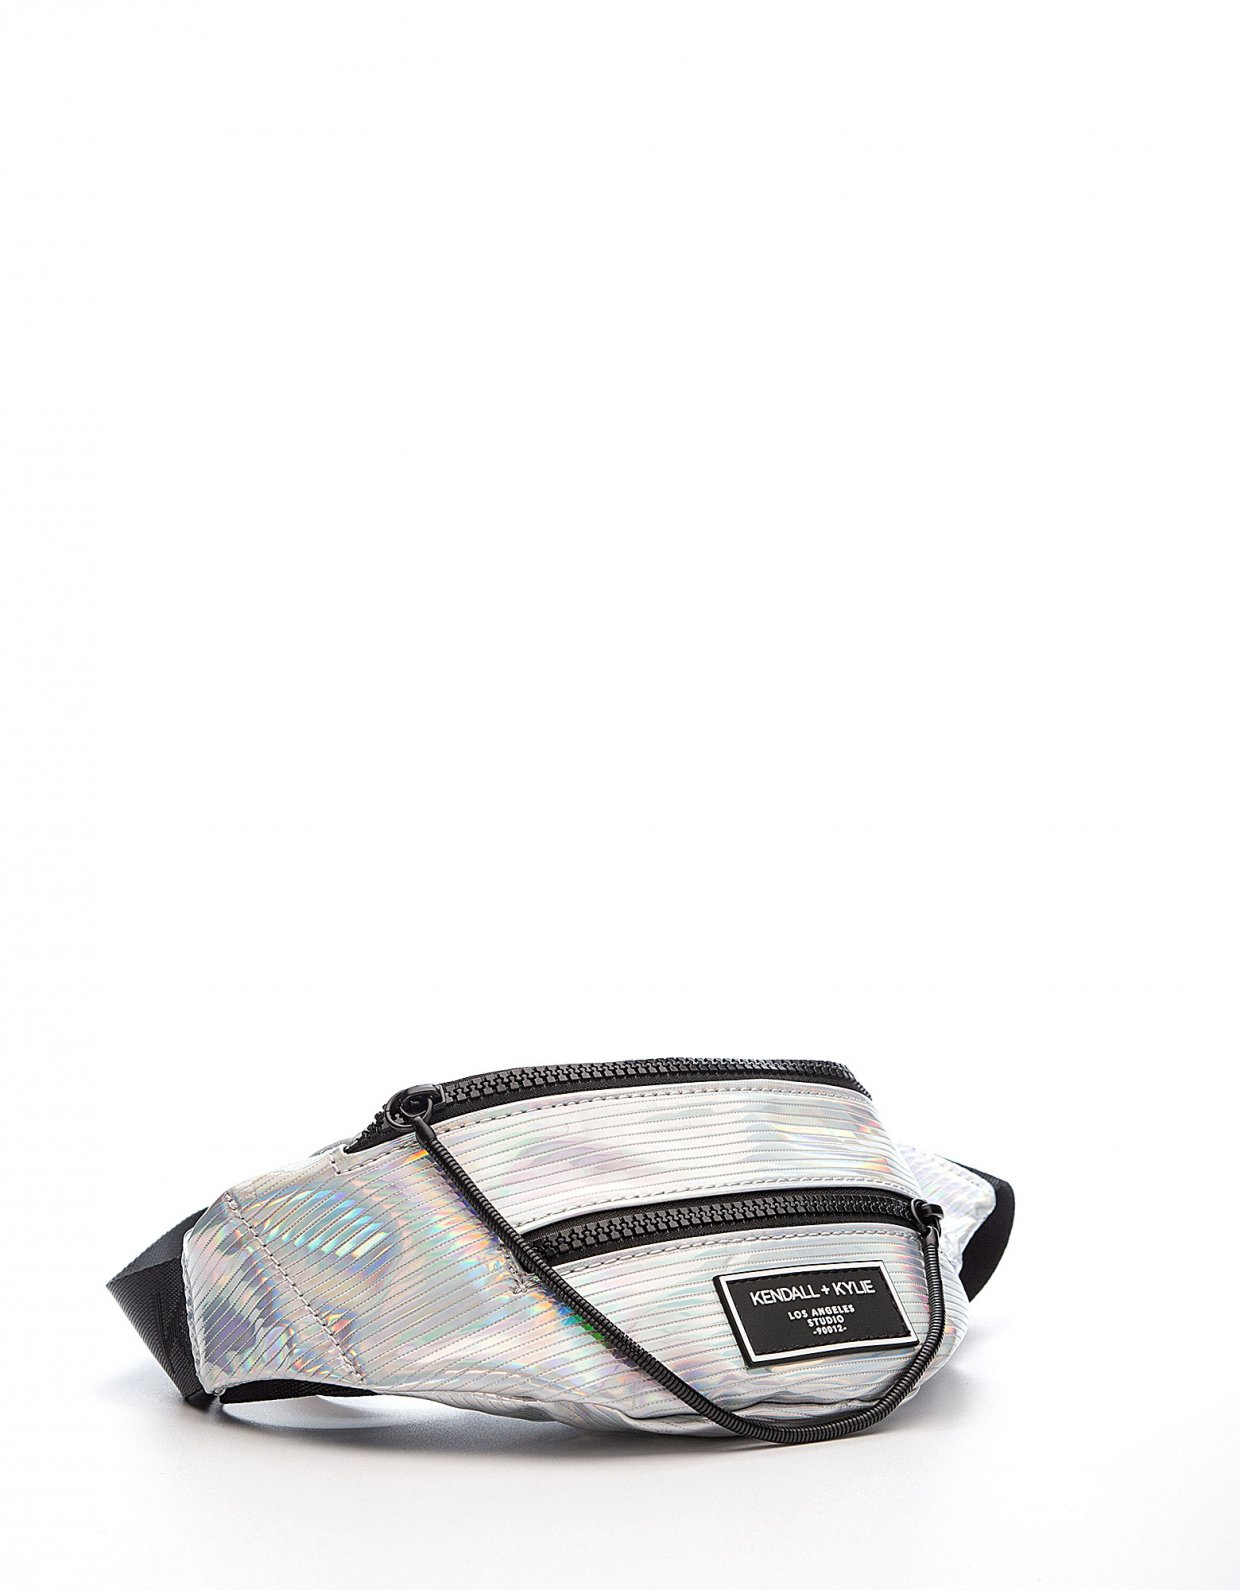 Kendall + Kylie Ashlee fanny pack iridescent striped